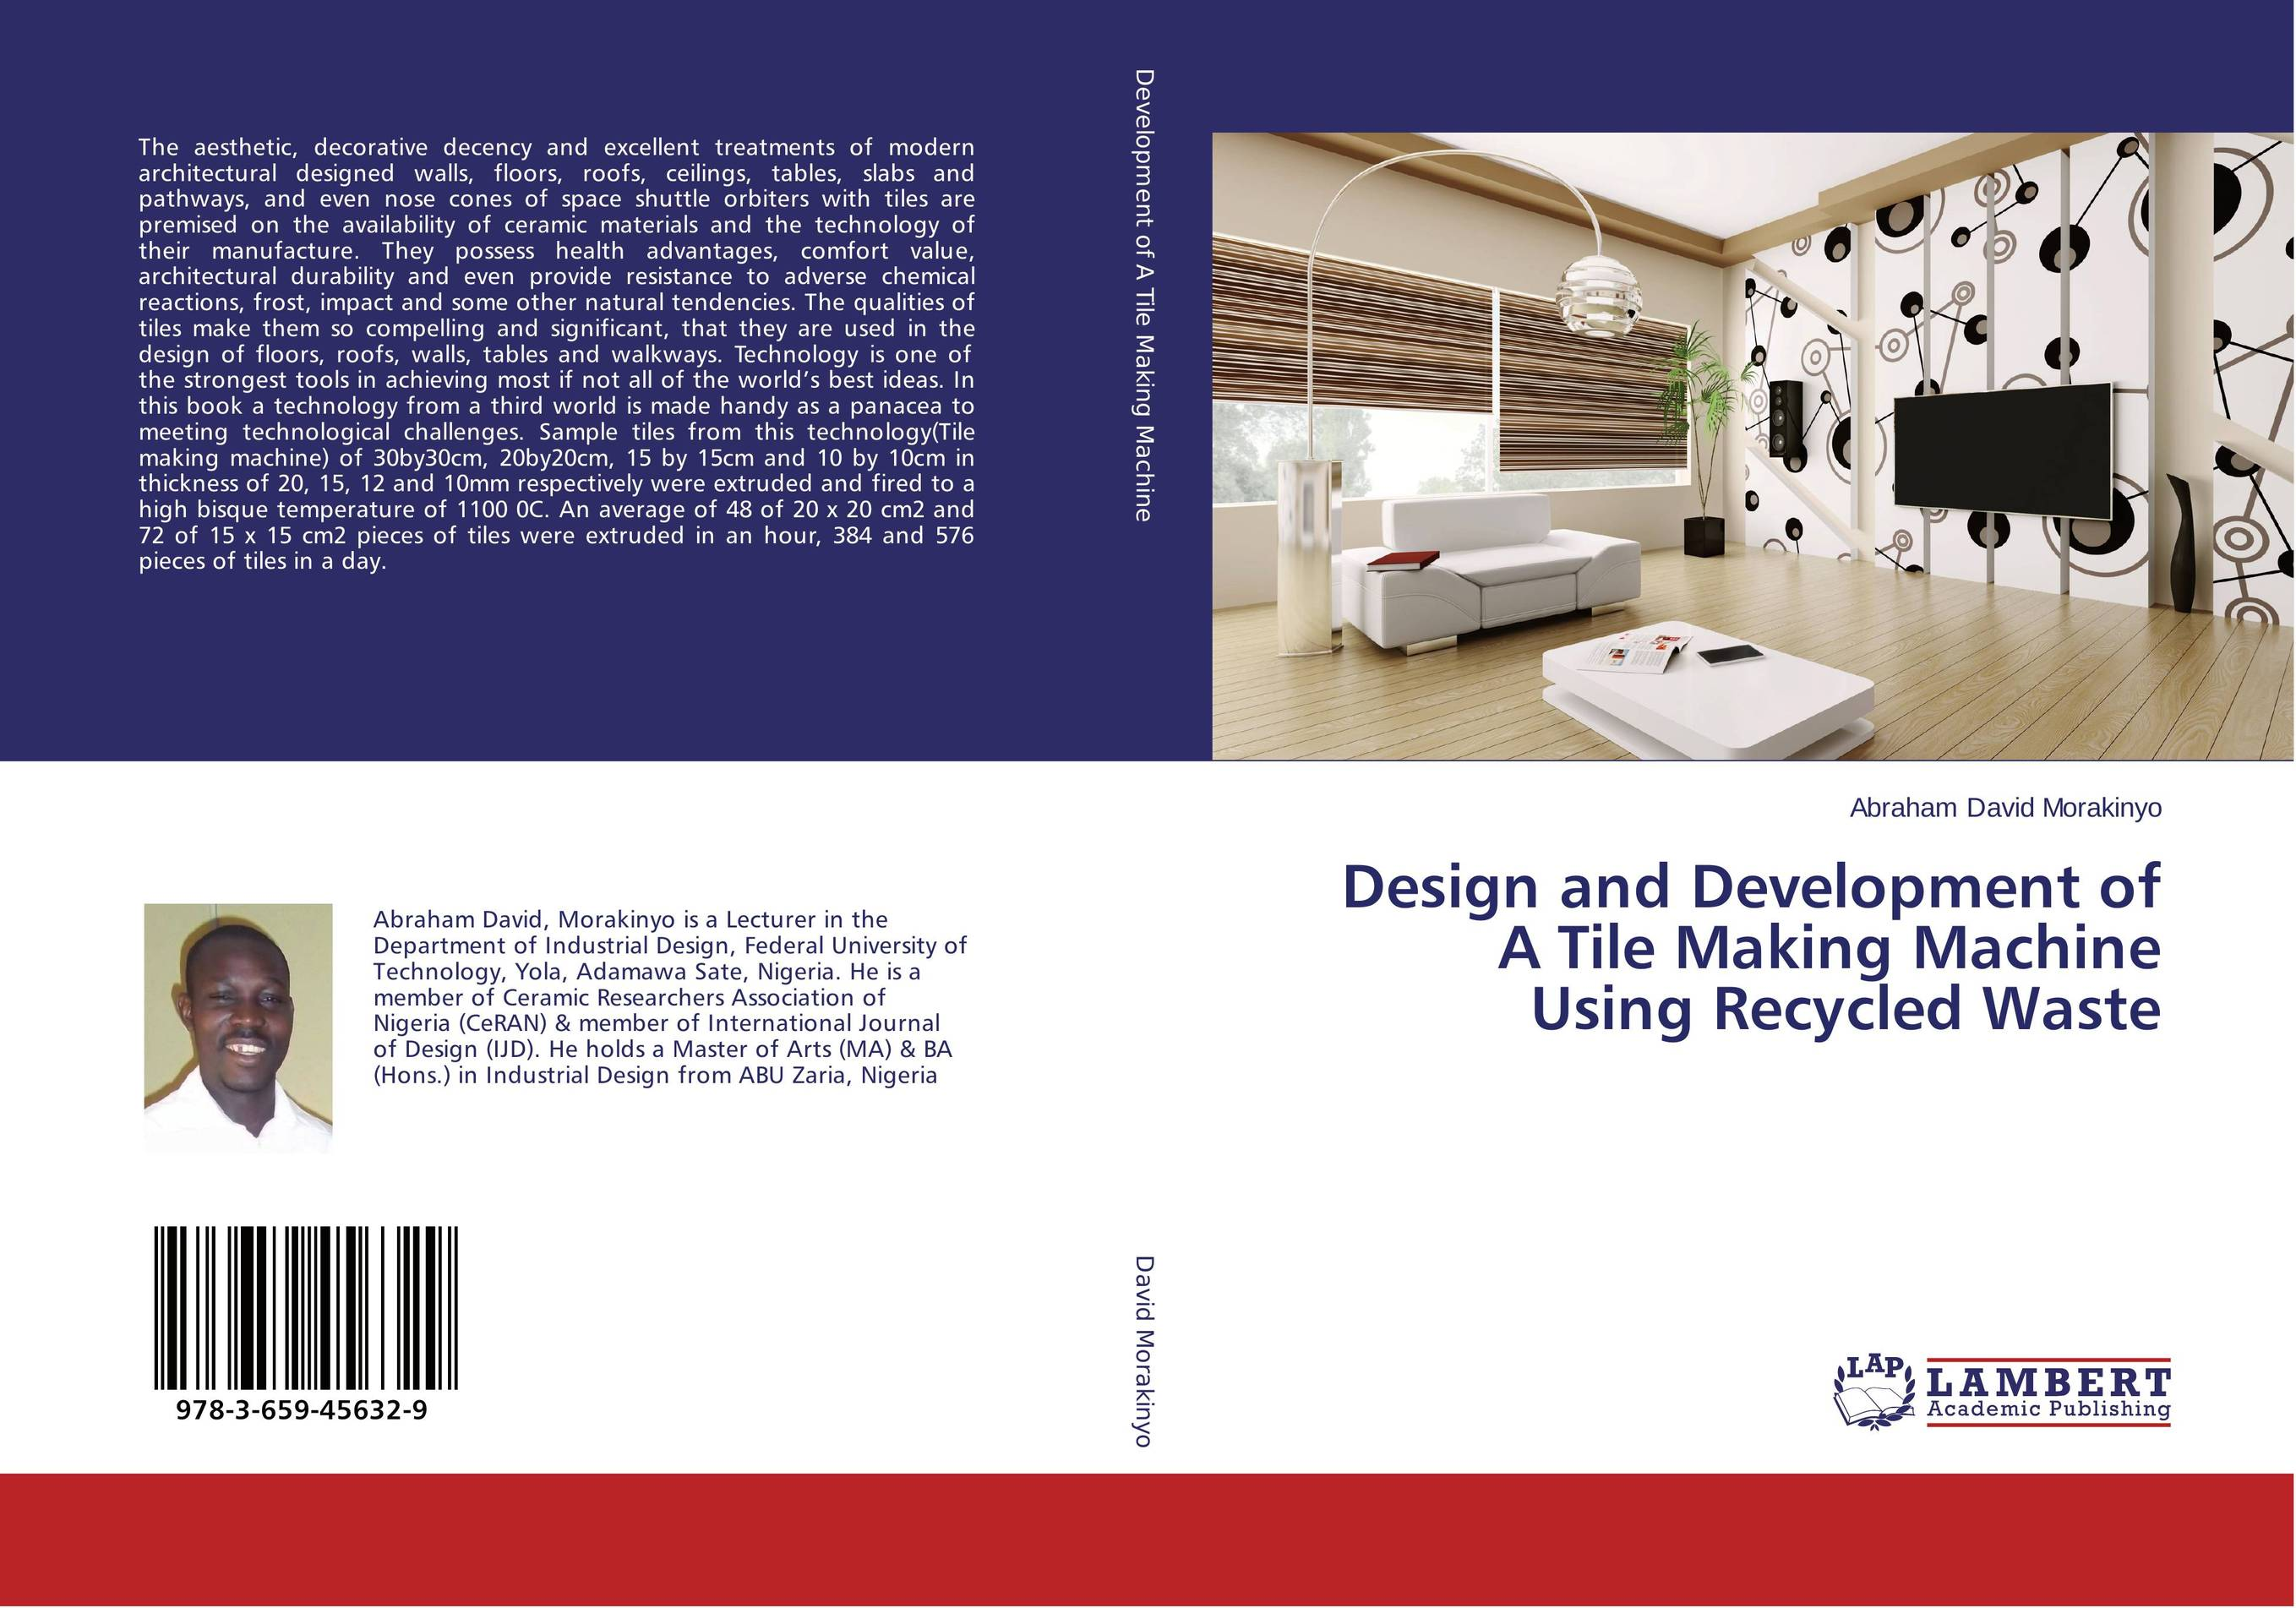 Design and Development of A Tile Making Machine Using Recycled Waste 50 ways to paint ceilings and floors